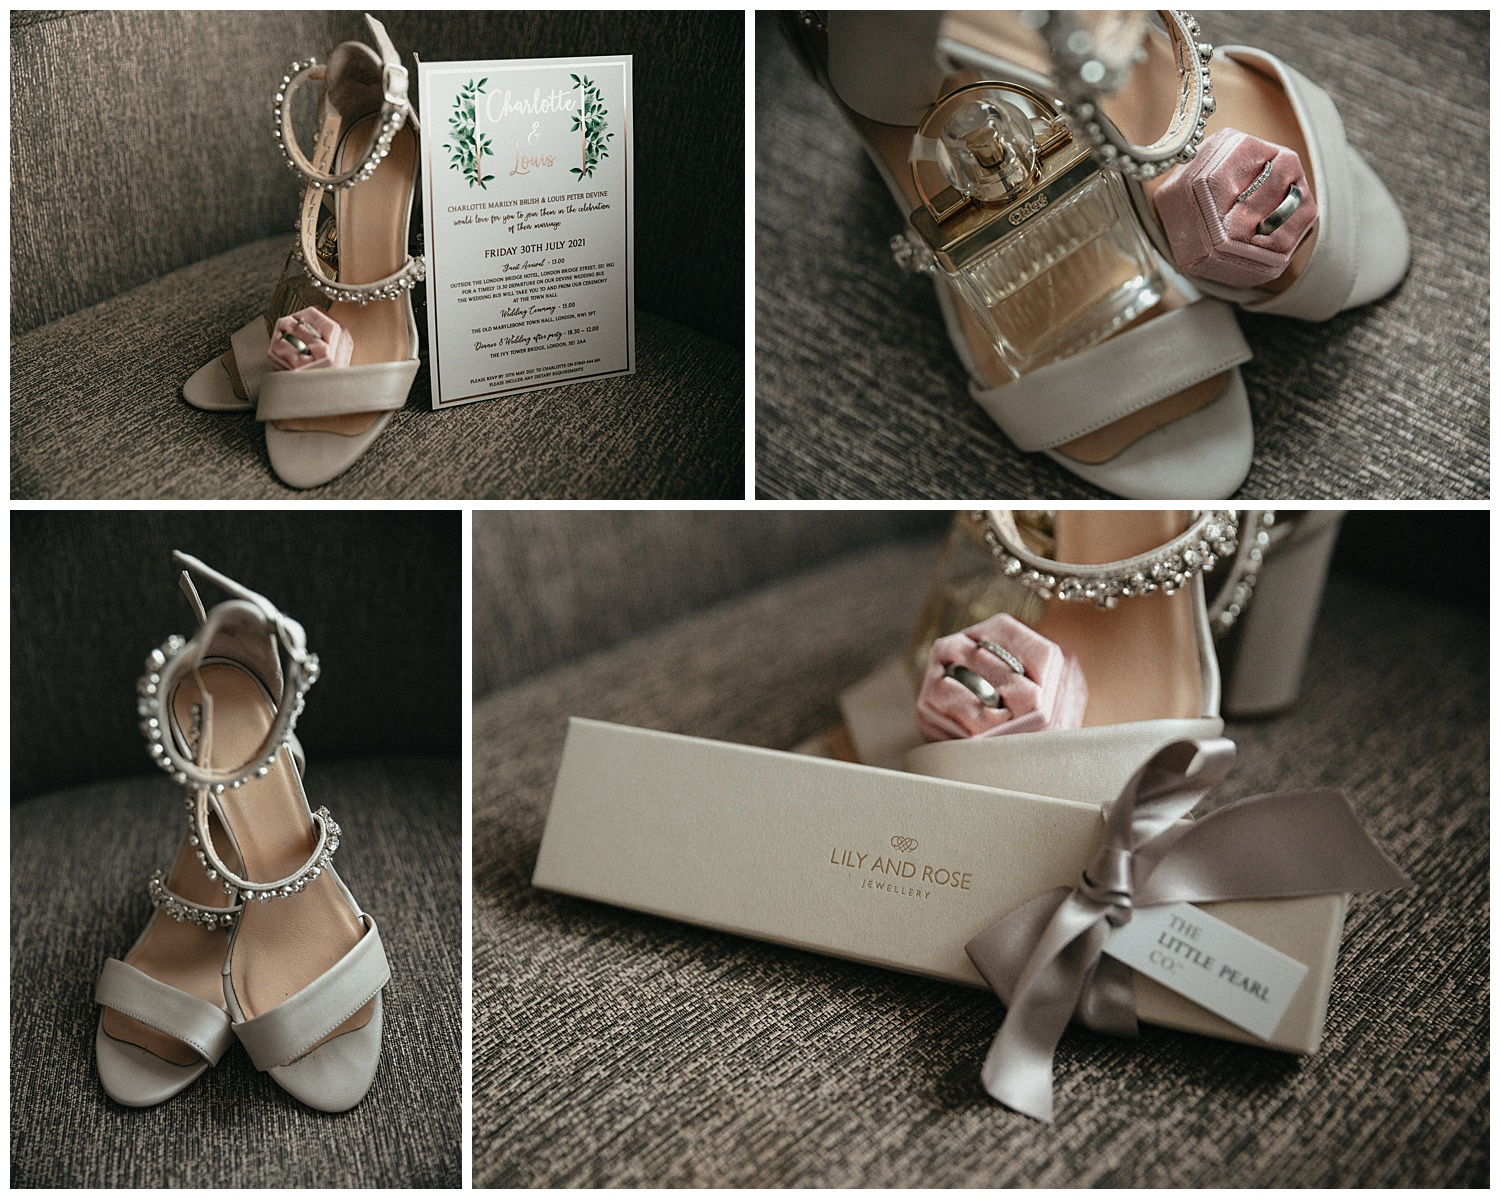 Weddings at The Ivy Tower Bridge - The brides shoes and Jewellery